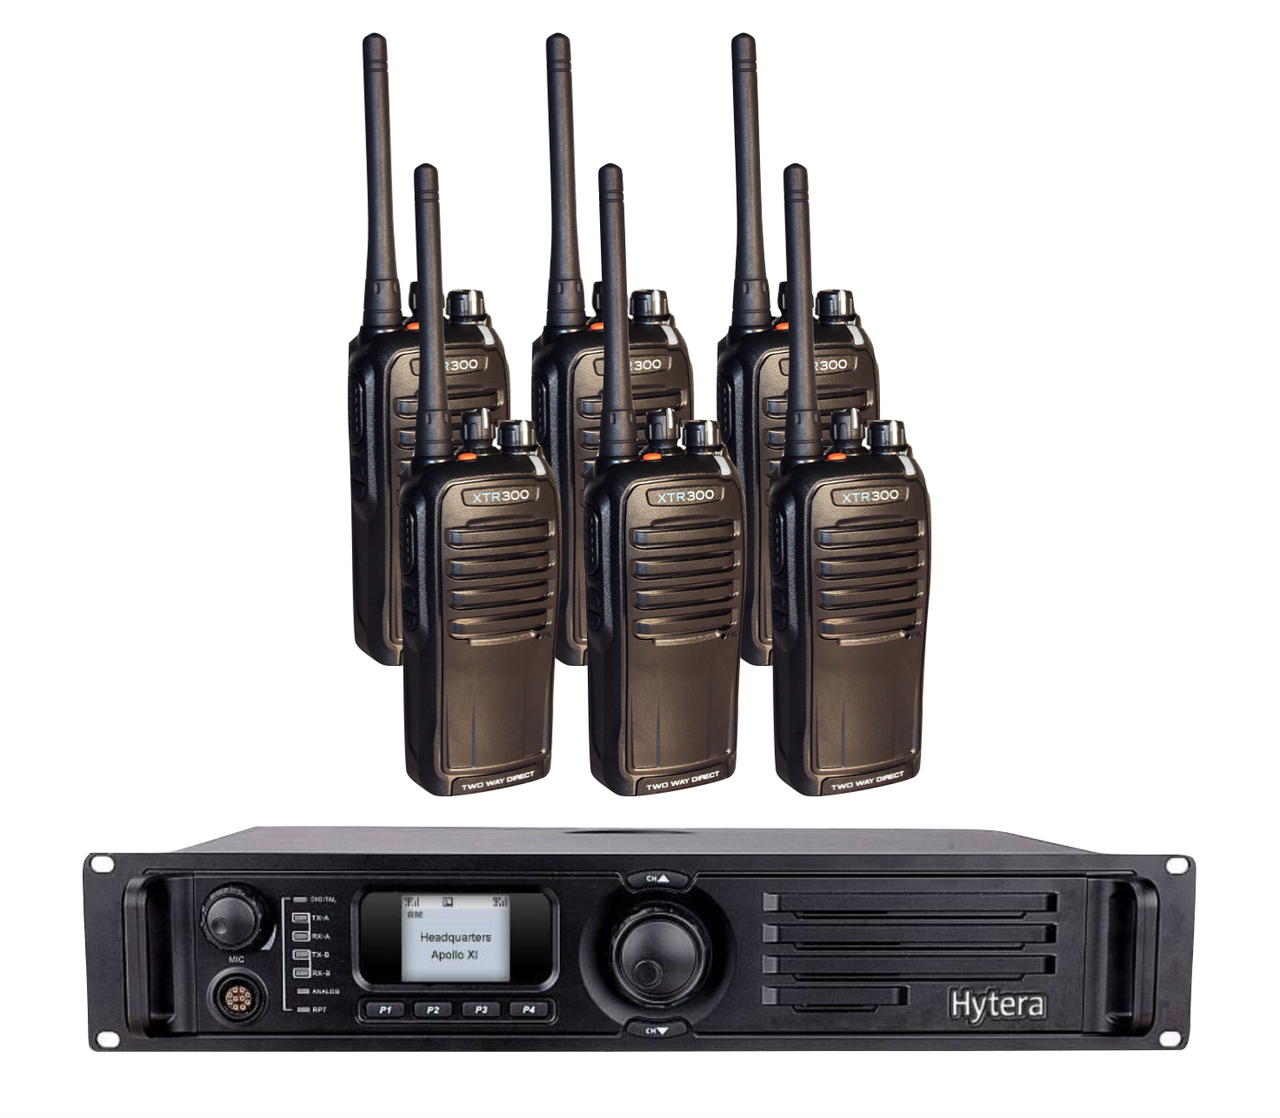 Standard Repeater Bundle - Radios and Accessories Included